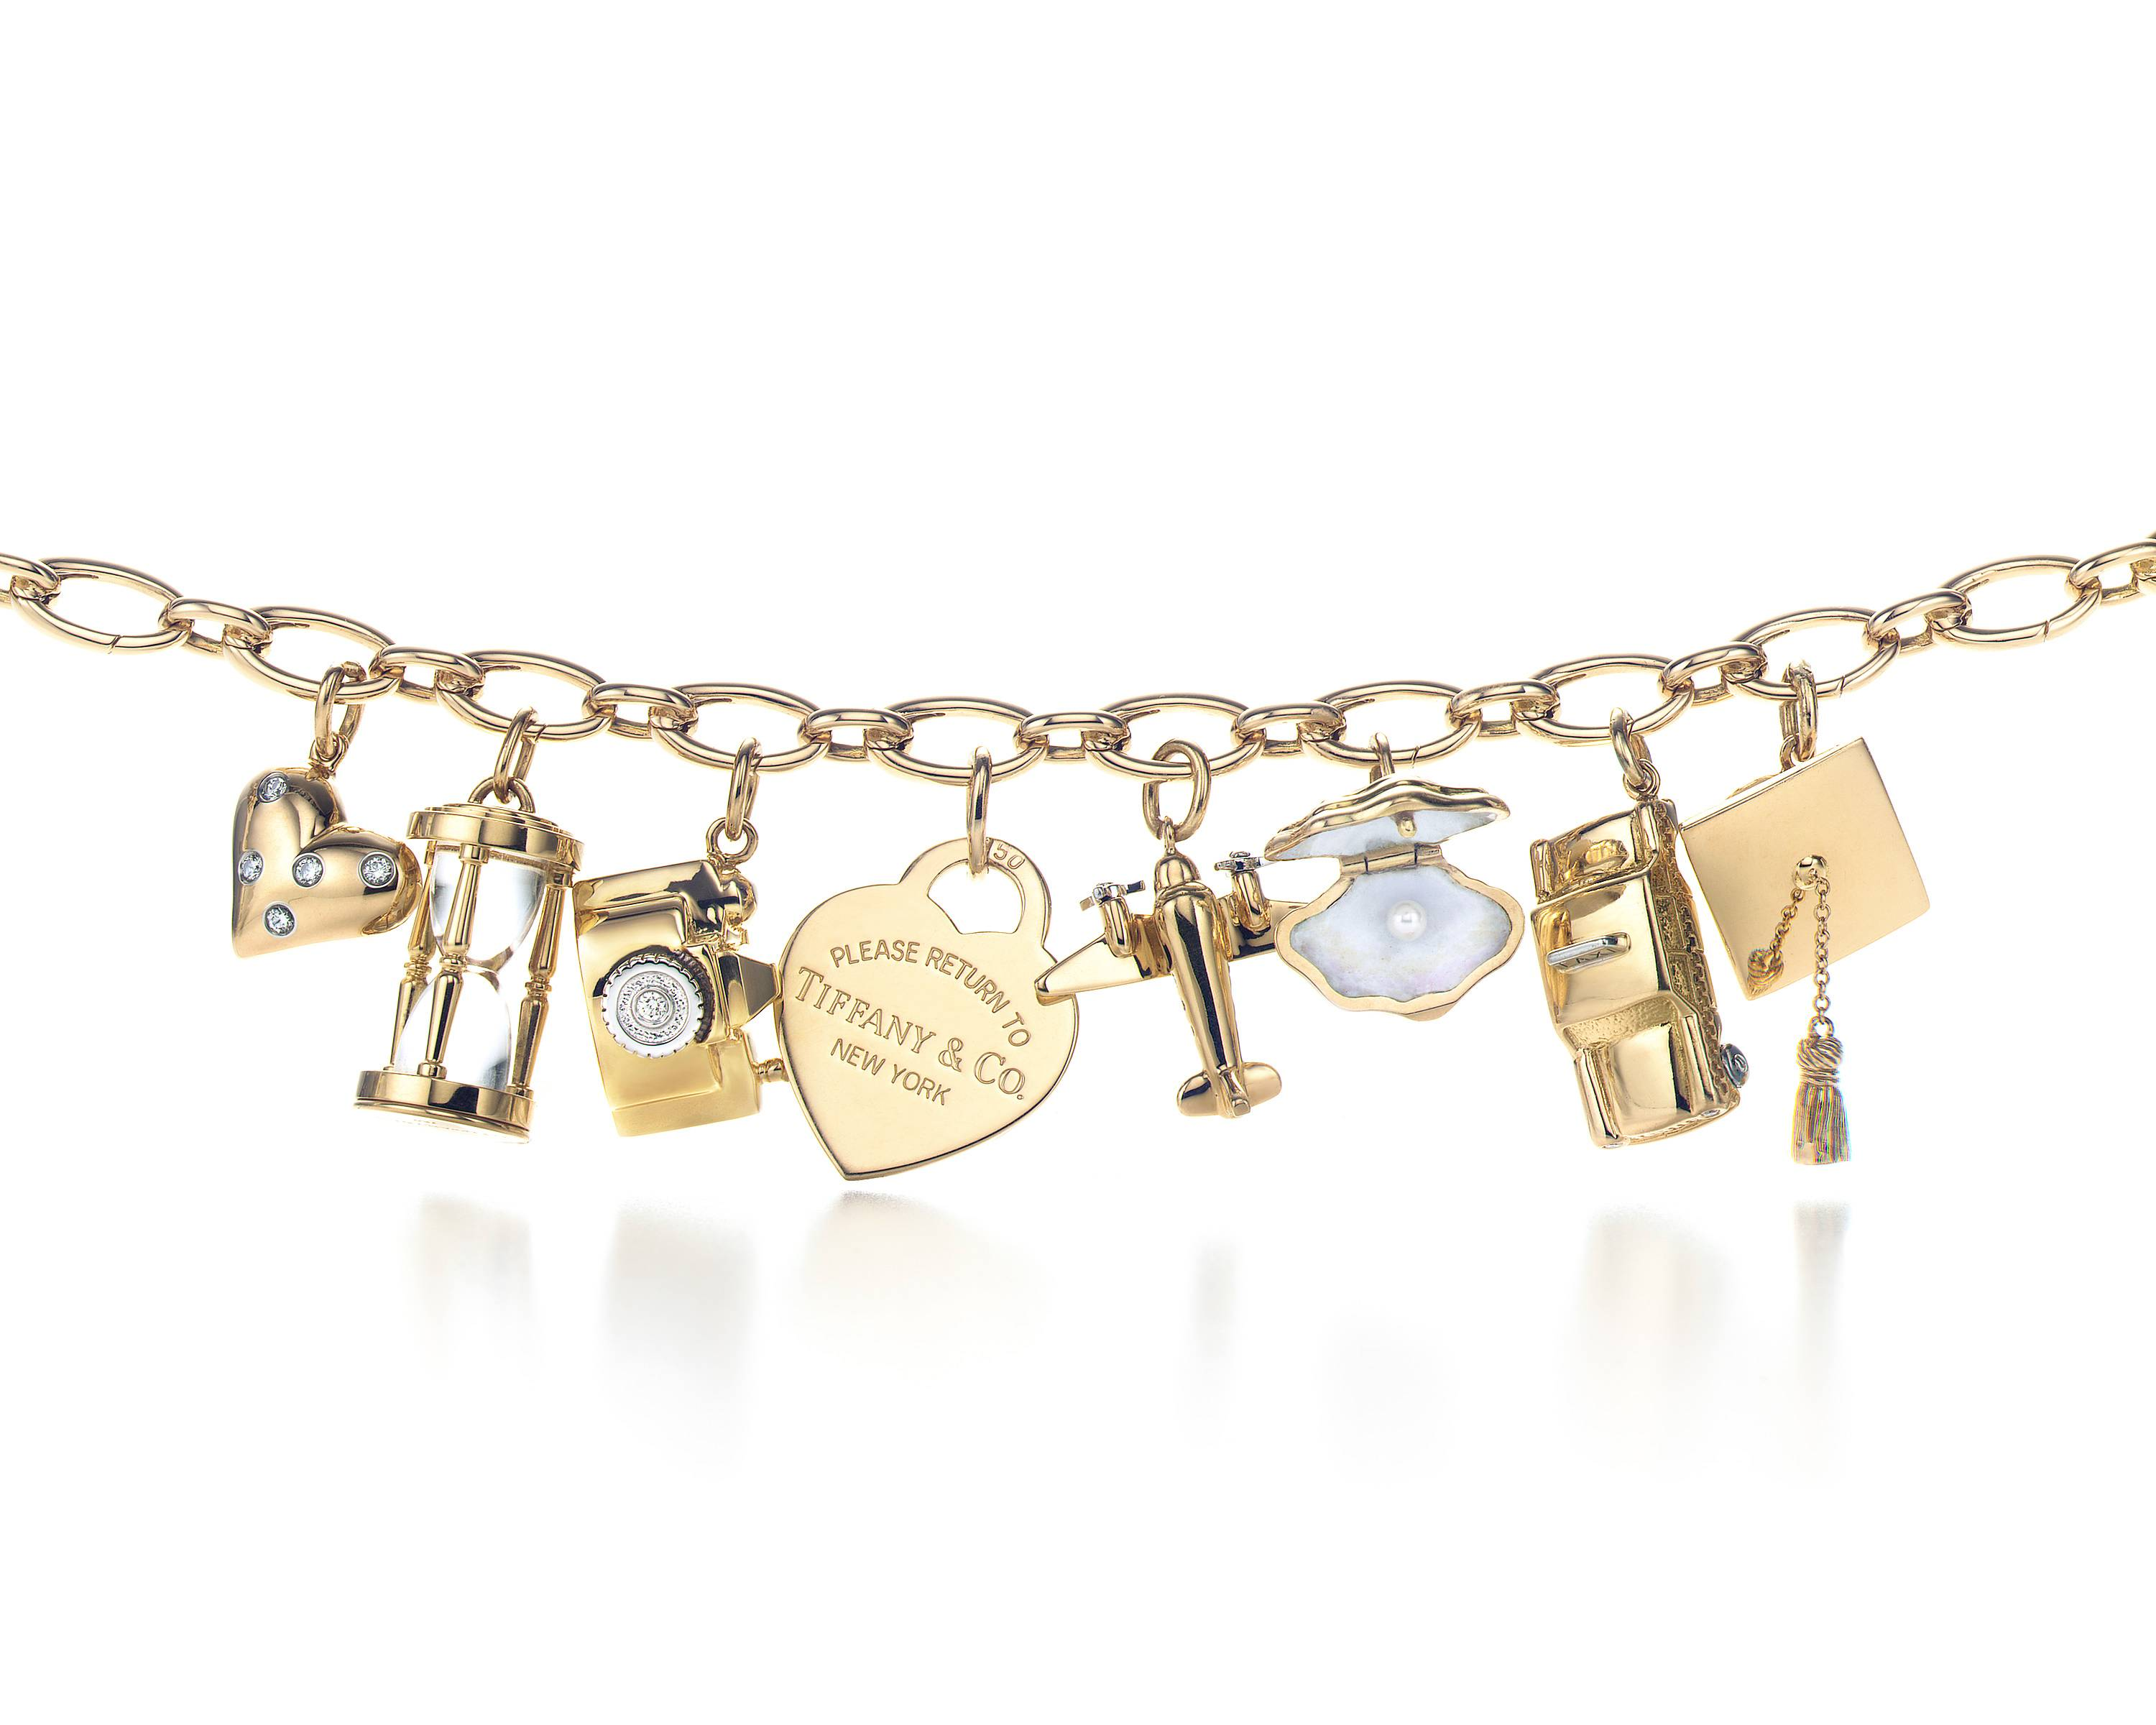 tiffany co charm bracelet in gold more fun jewelry